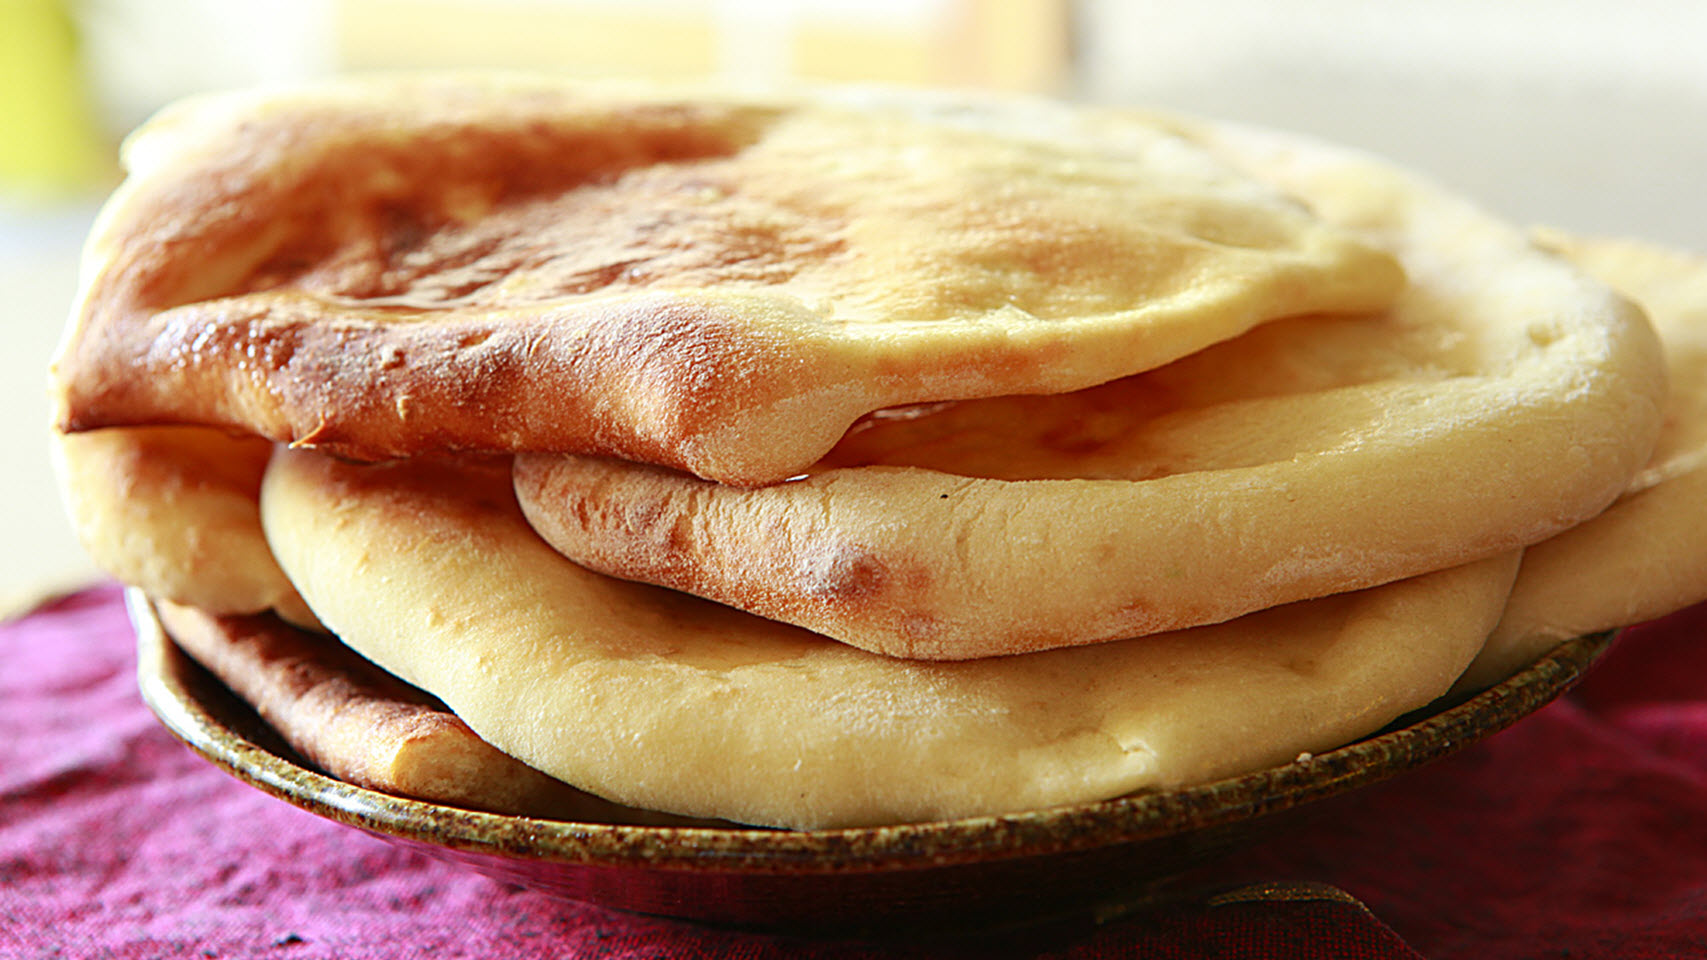 stack of homemade naan flatbreads